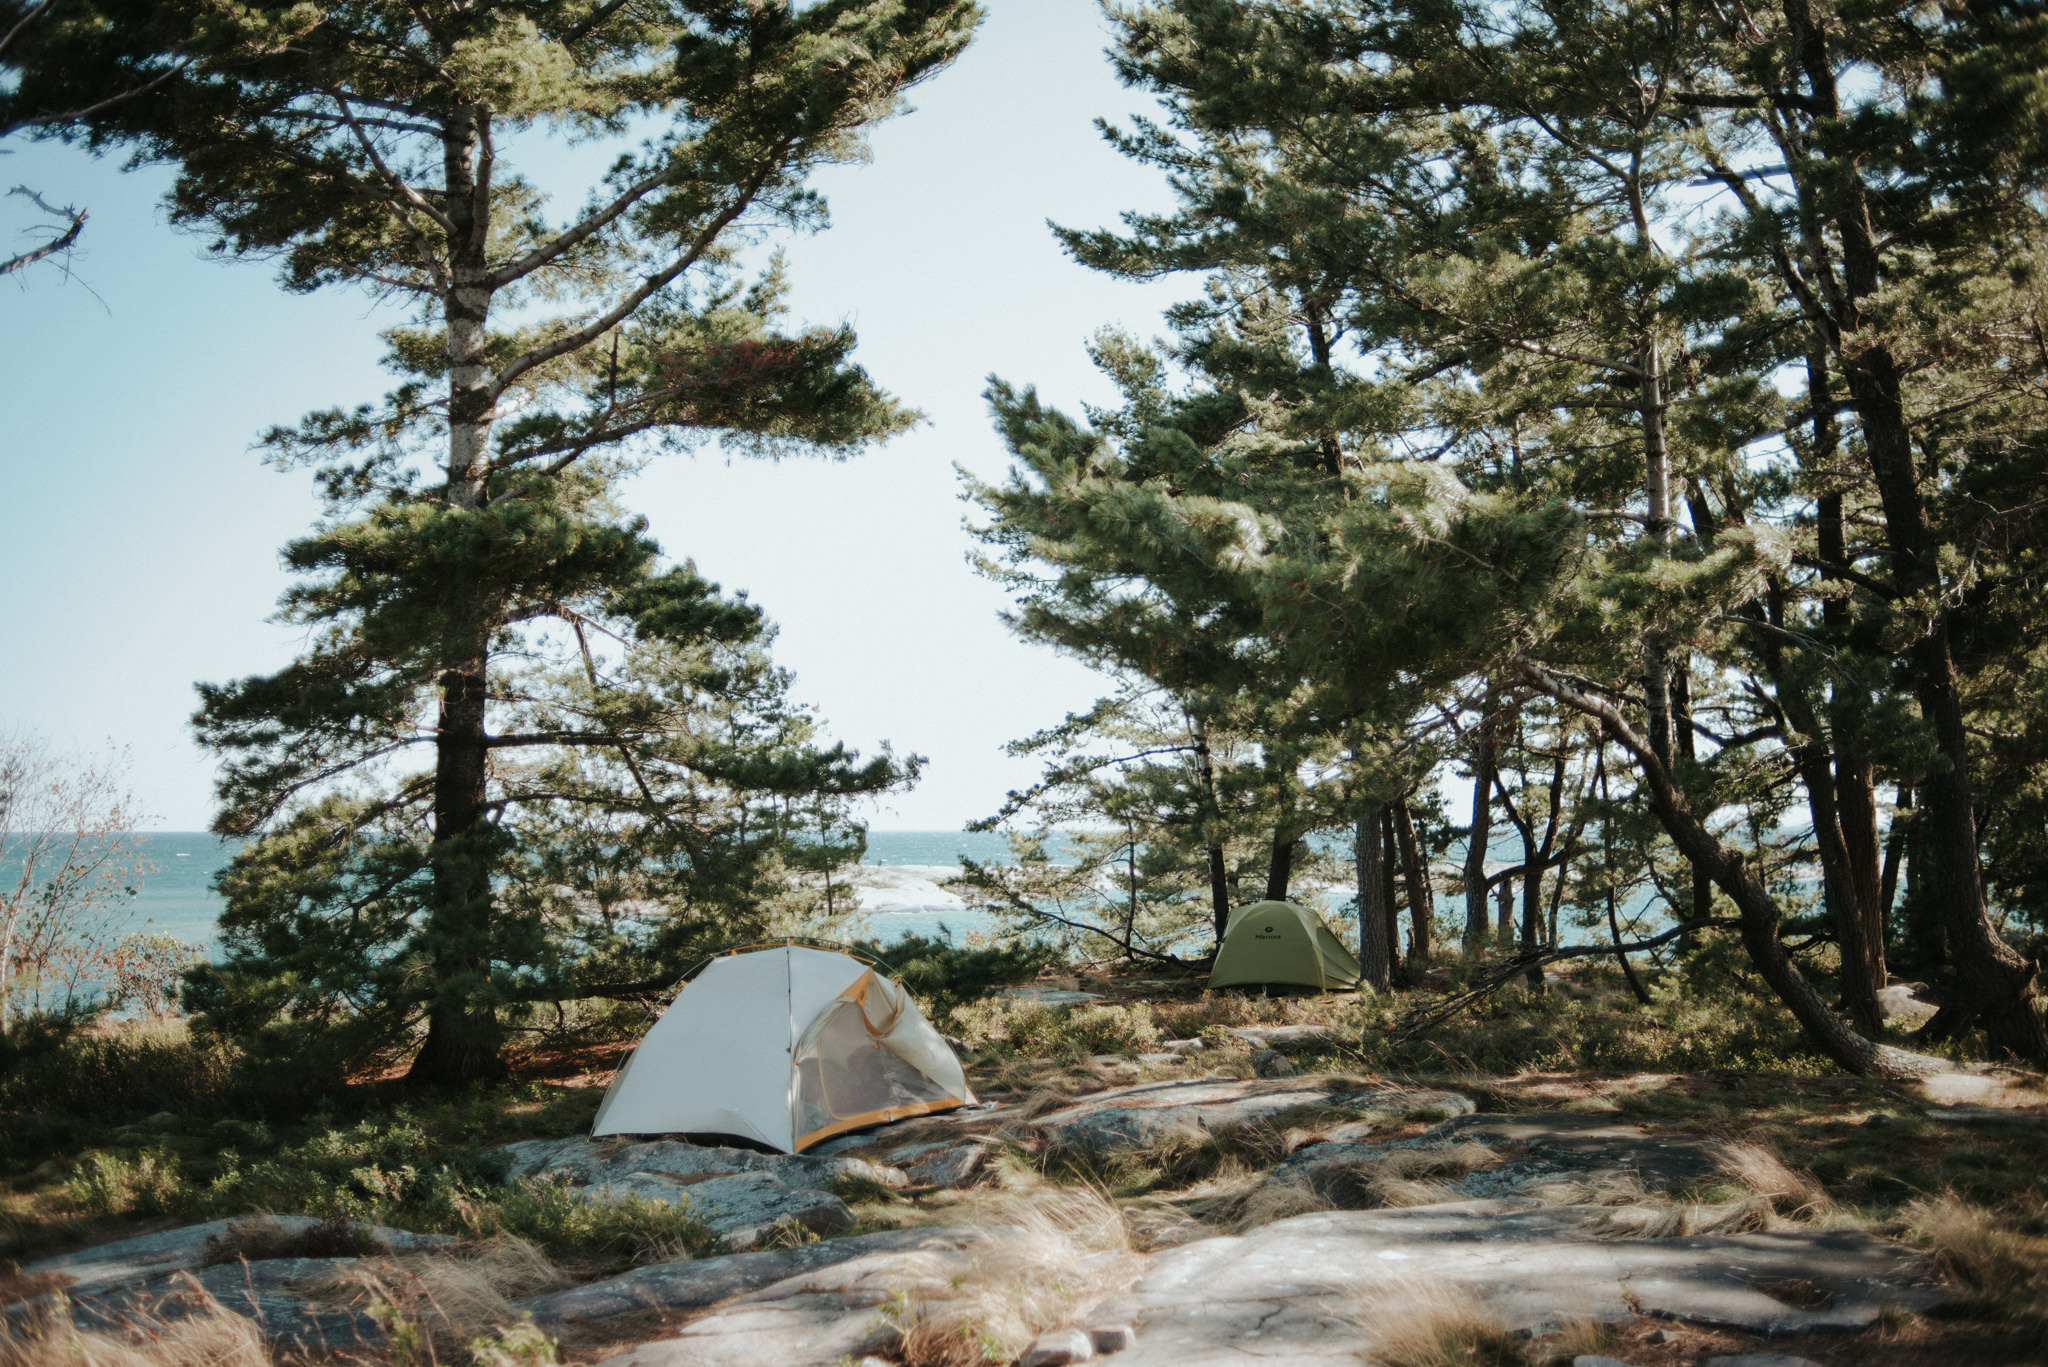 Camping at Philip Edward Island on Georgian Bay // Daring Wanderer: www.daringwanderer.com